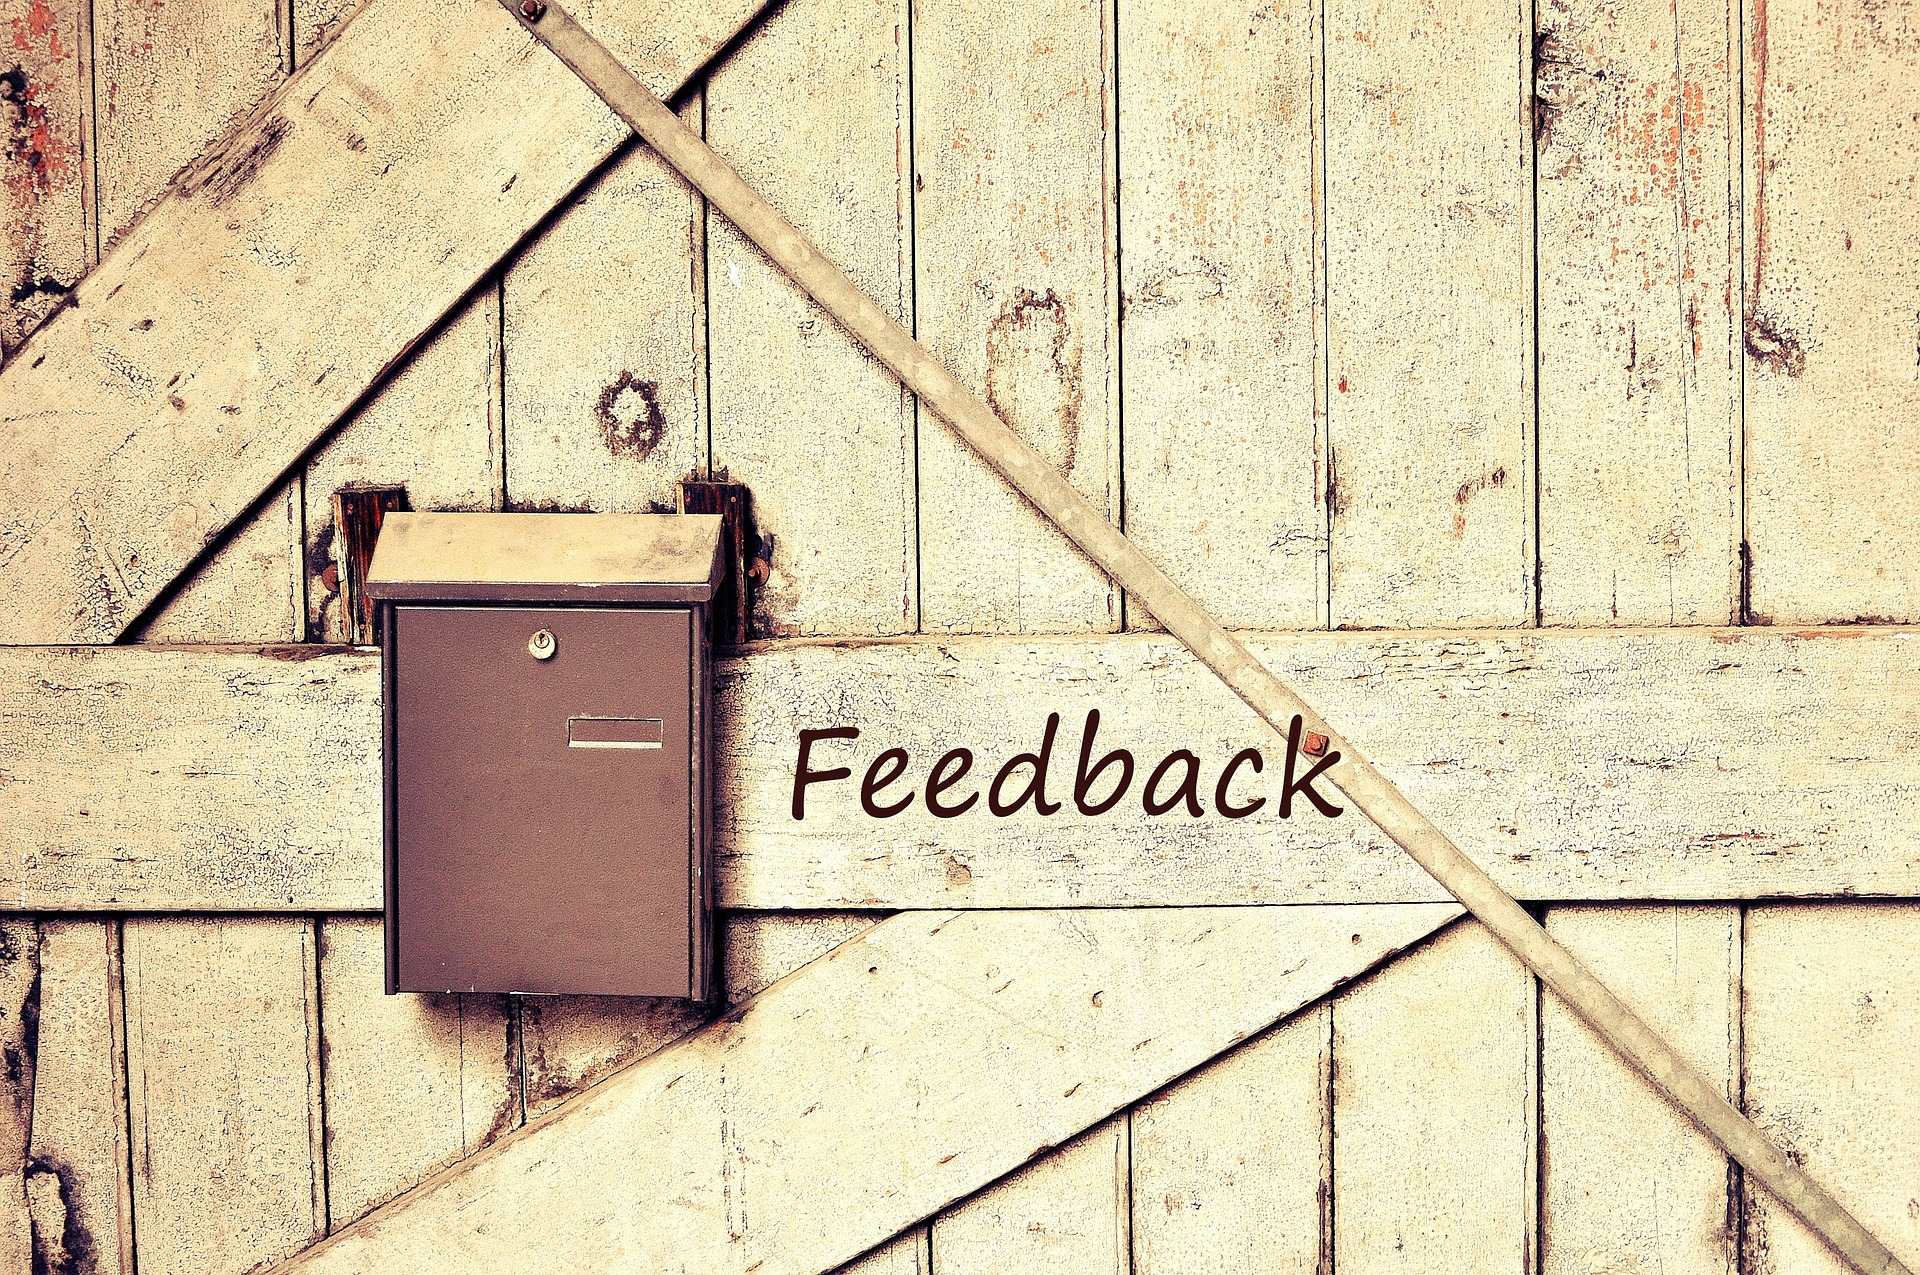 Habit #6: Good Feedback Leads to Great Products